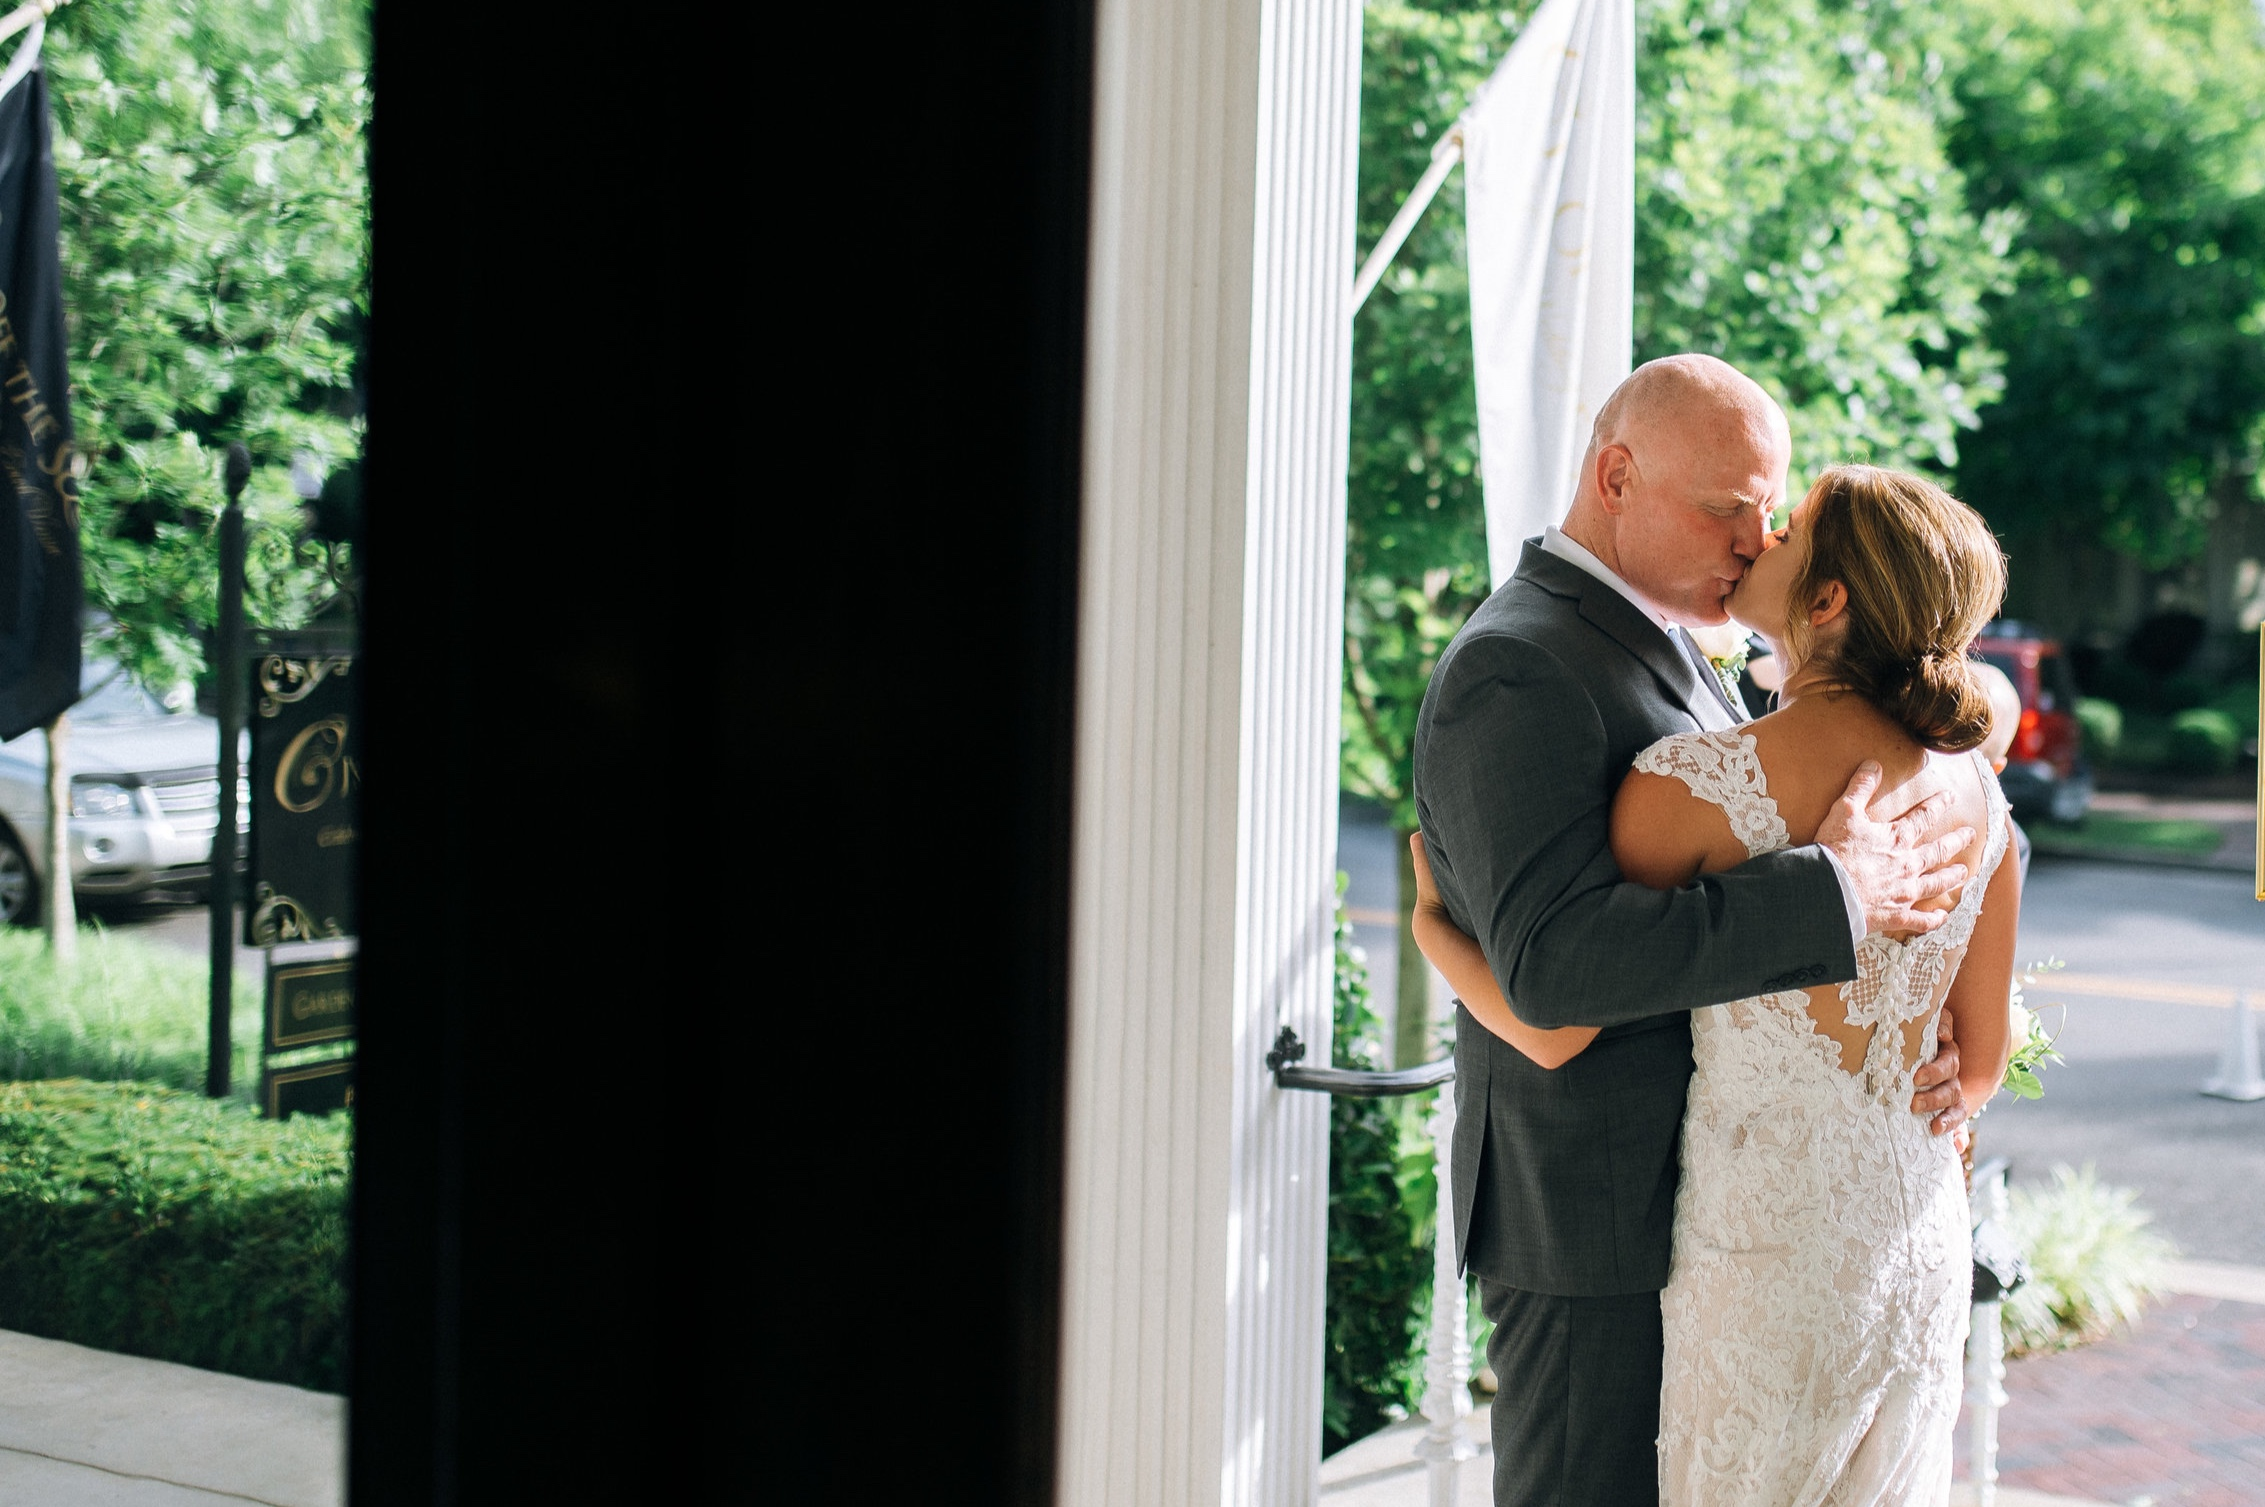 Molly + Vince Franklin Wedding - at CJs Off the Square by Details Nashville